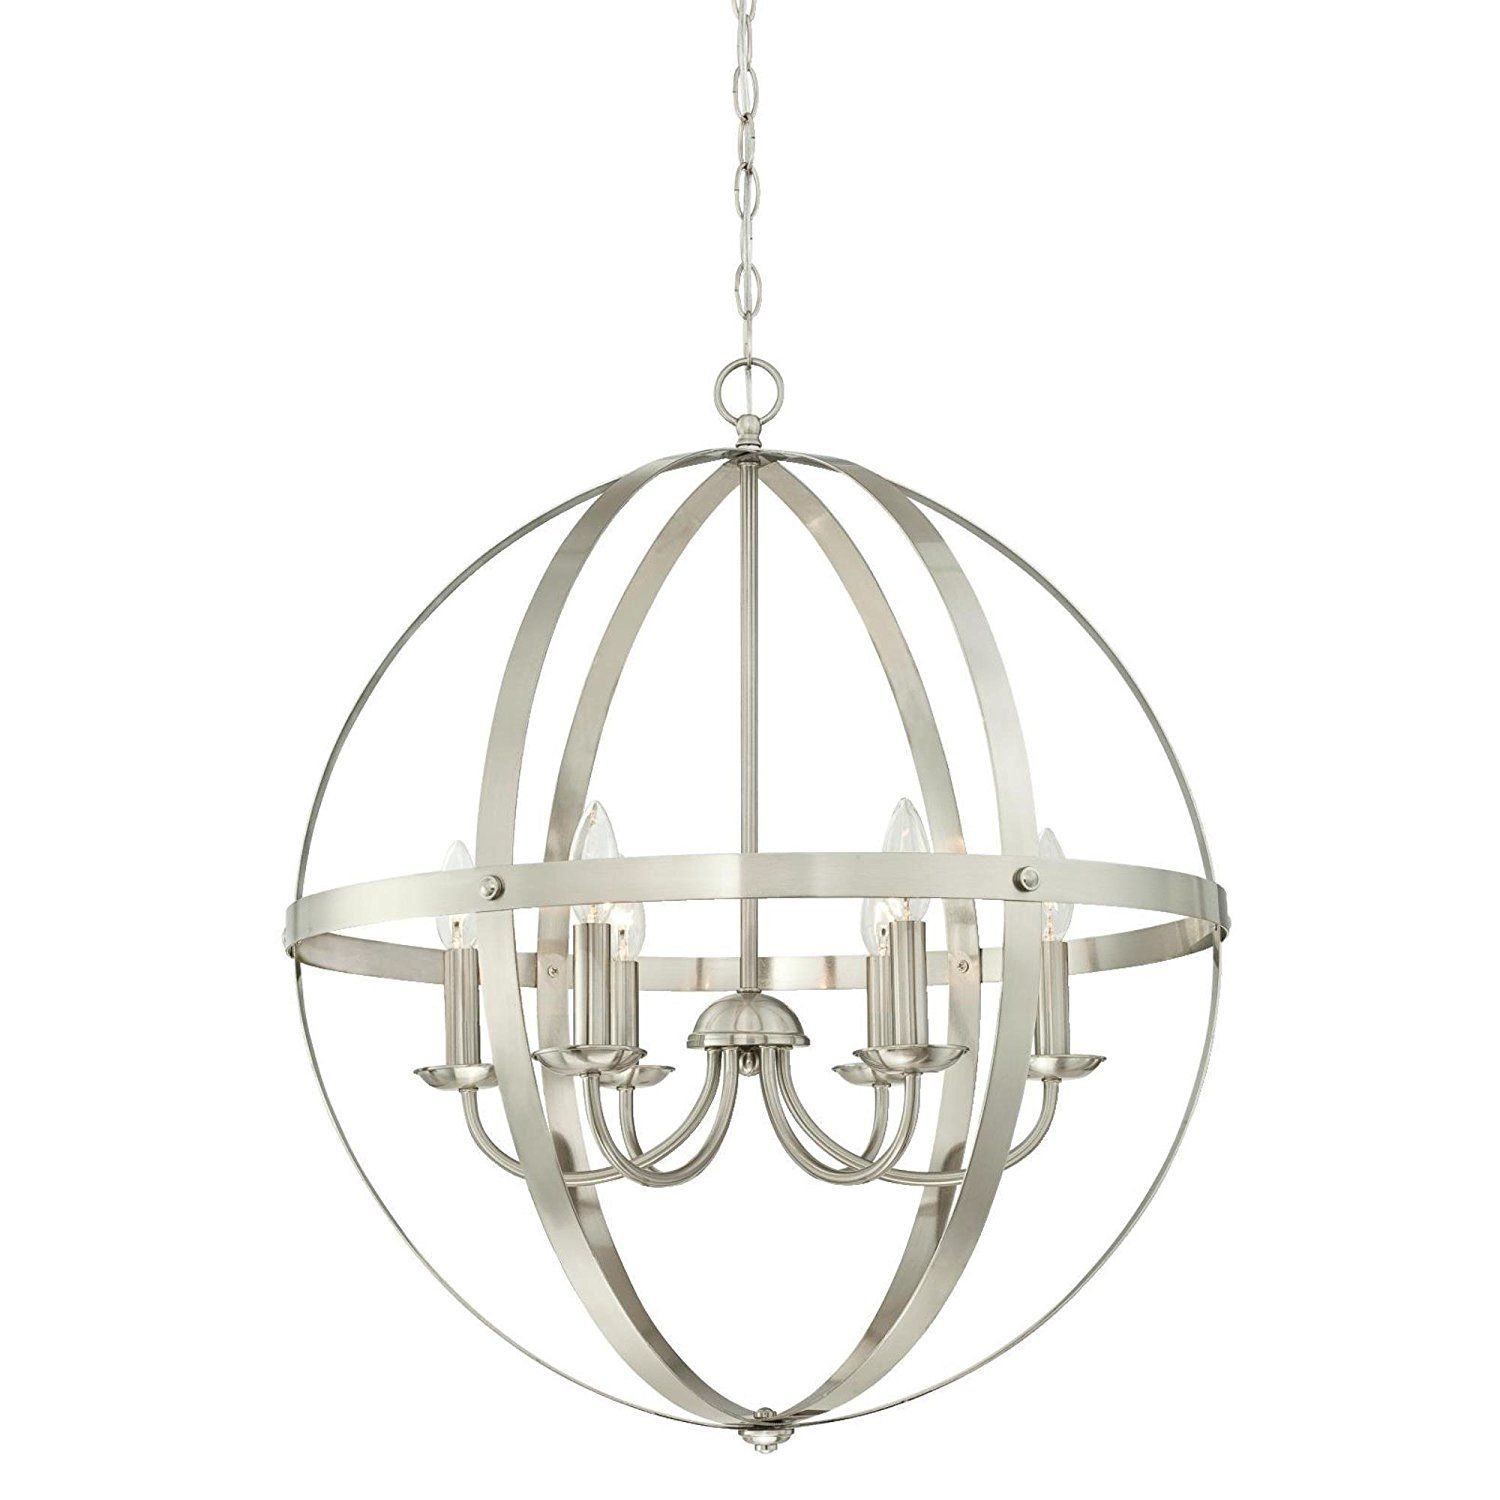 Open Cage Chandelier — Perfect For Vintage Inspired Regarding La Barge 3 Light Globe Chandeliers (View 16 of 30)